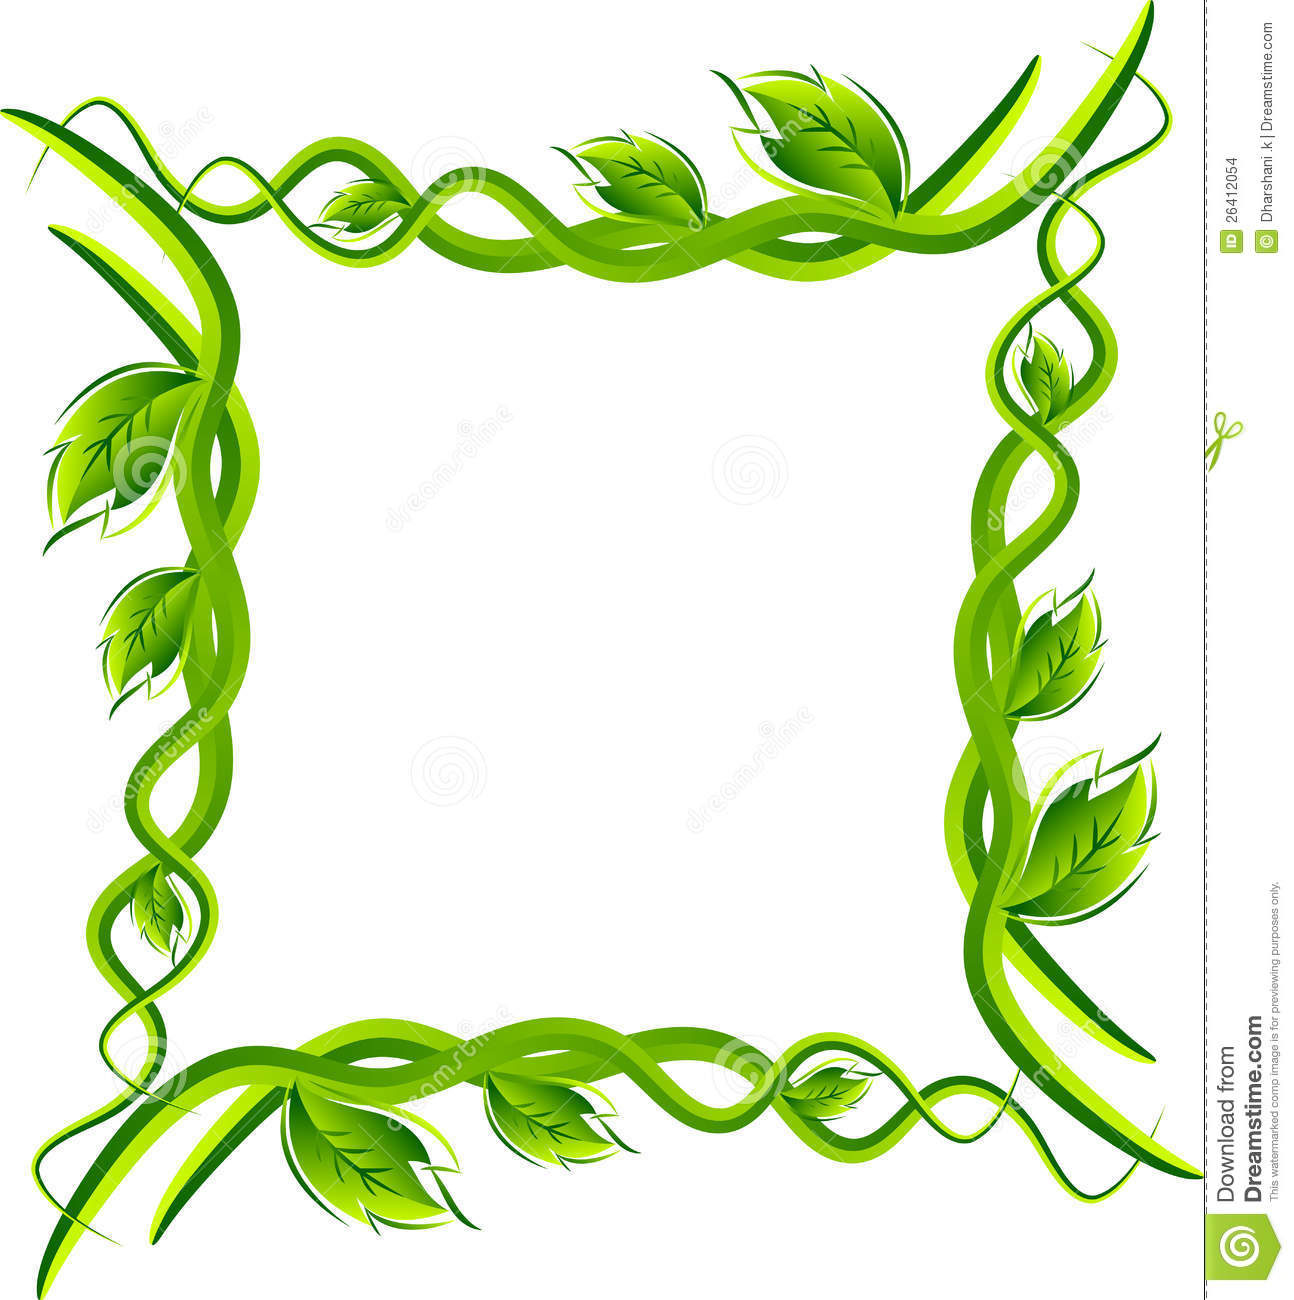 Illustration art of leafs frame border with isolated background.